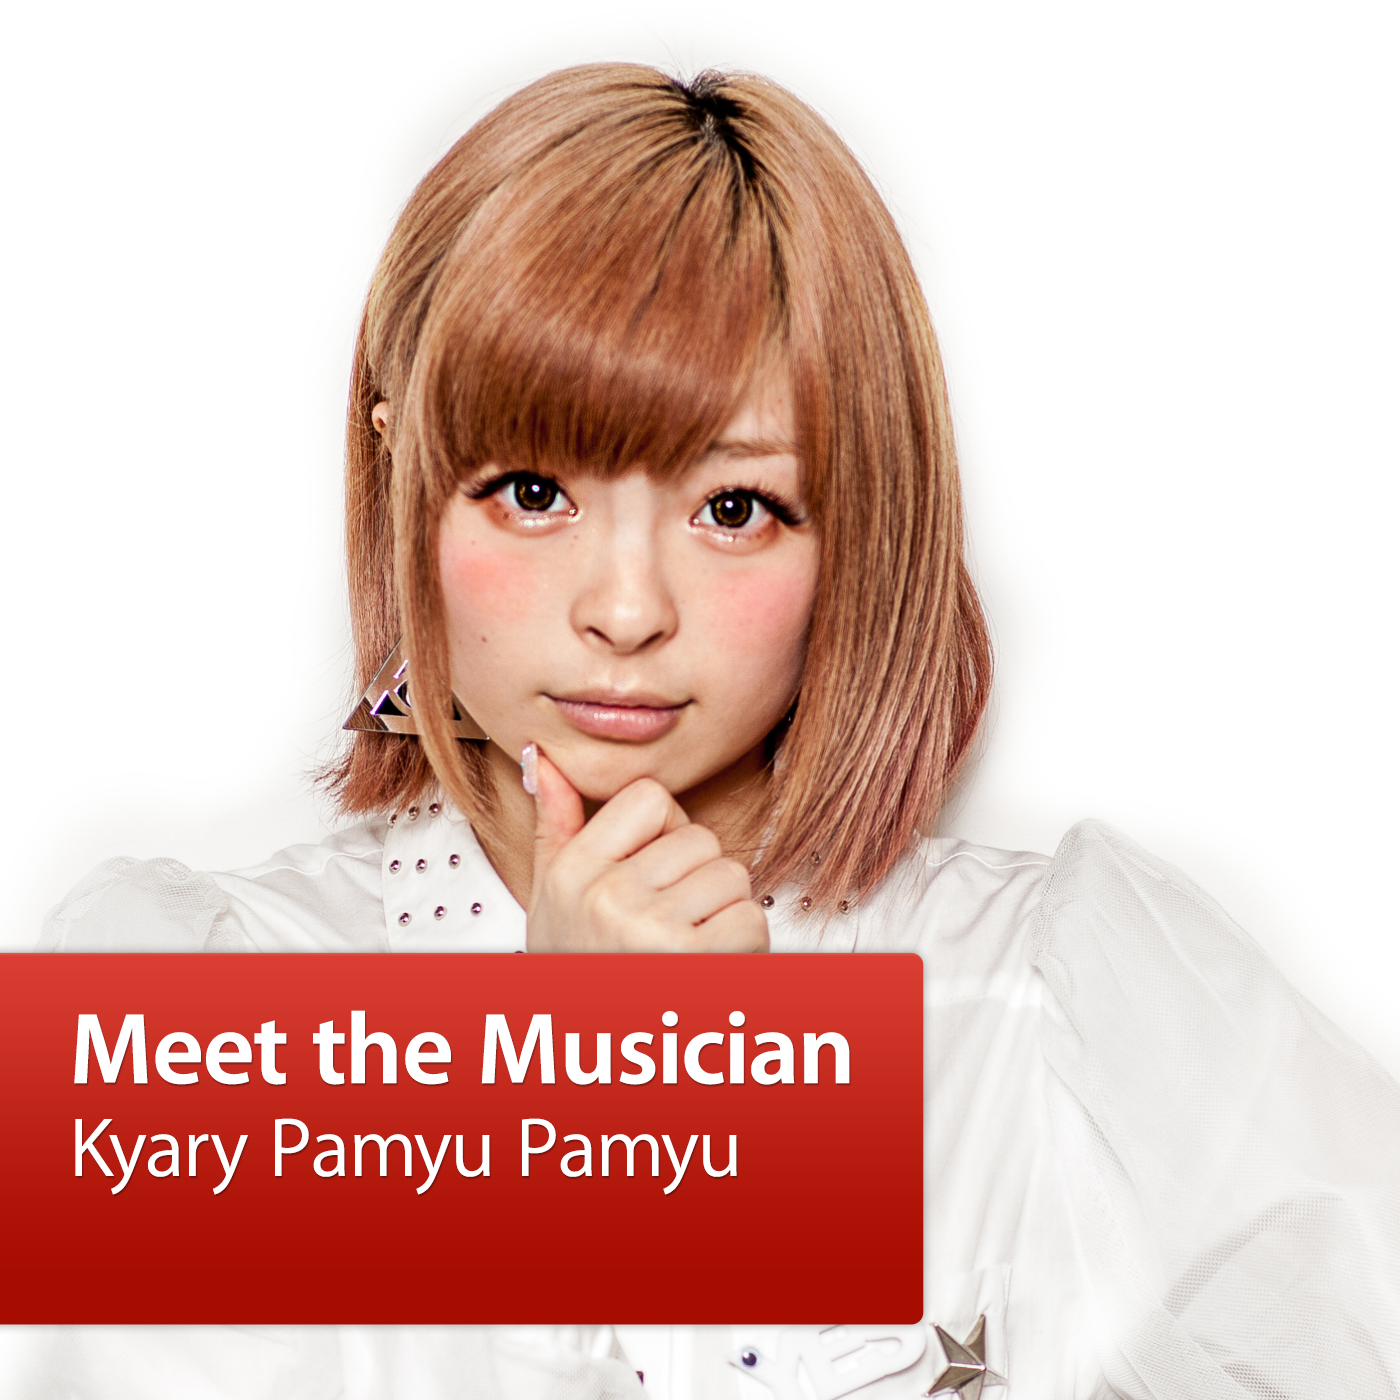 Kyary Pamyu Pamyu: Meet the Musician